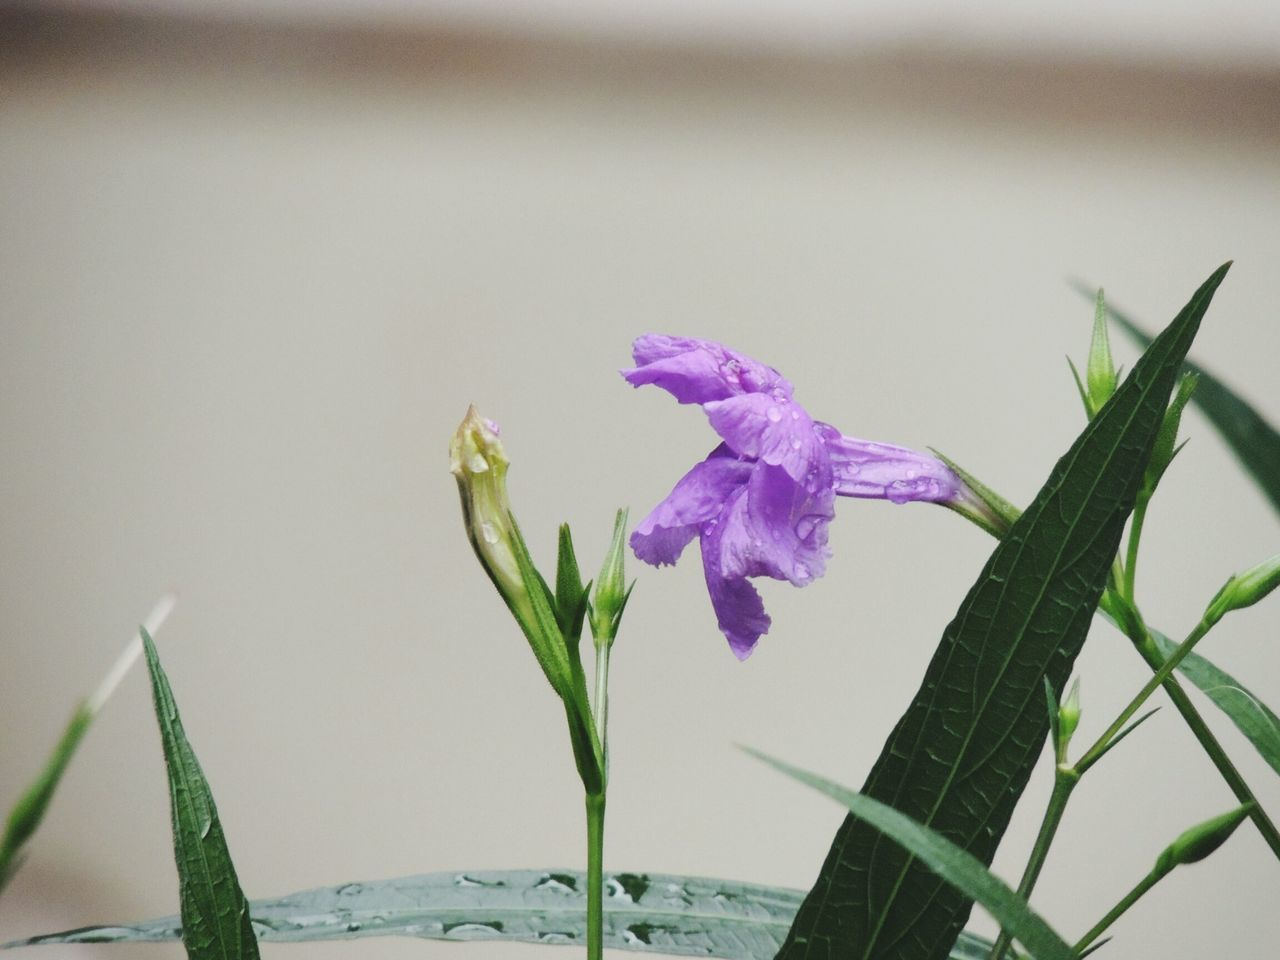 growth, nature, flower, beauty in nature, purple, plant, no people, petal, fragility, close-up, freshness, outdoors, water, day, flower head